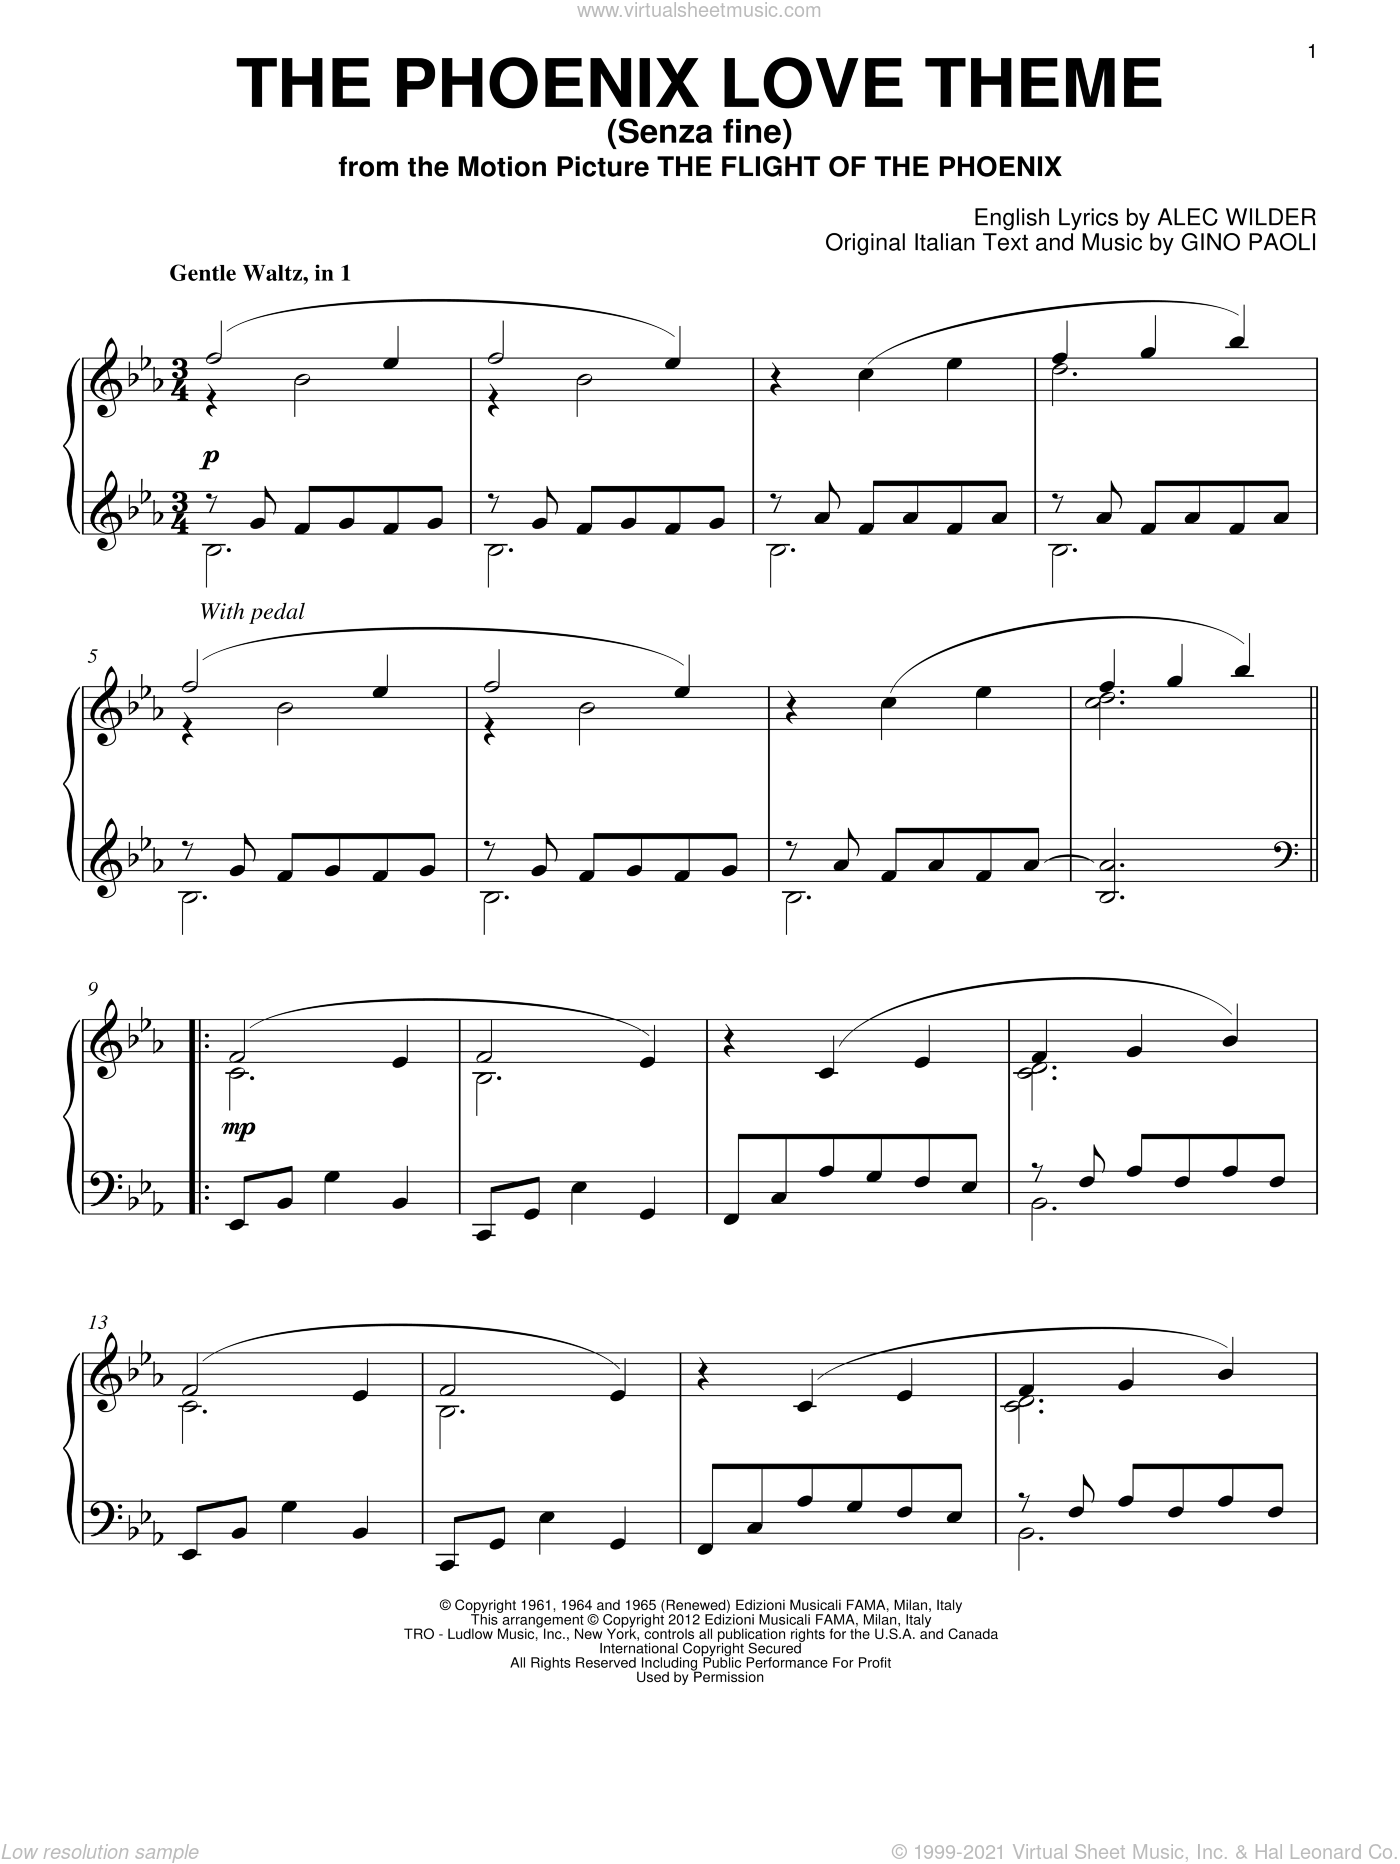 The Phoenix Love Theme (Senza Fine) sheet music for piano solo by Gino Paoli and Alec Wilder, intermediate skill level